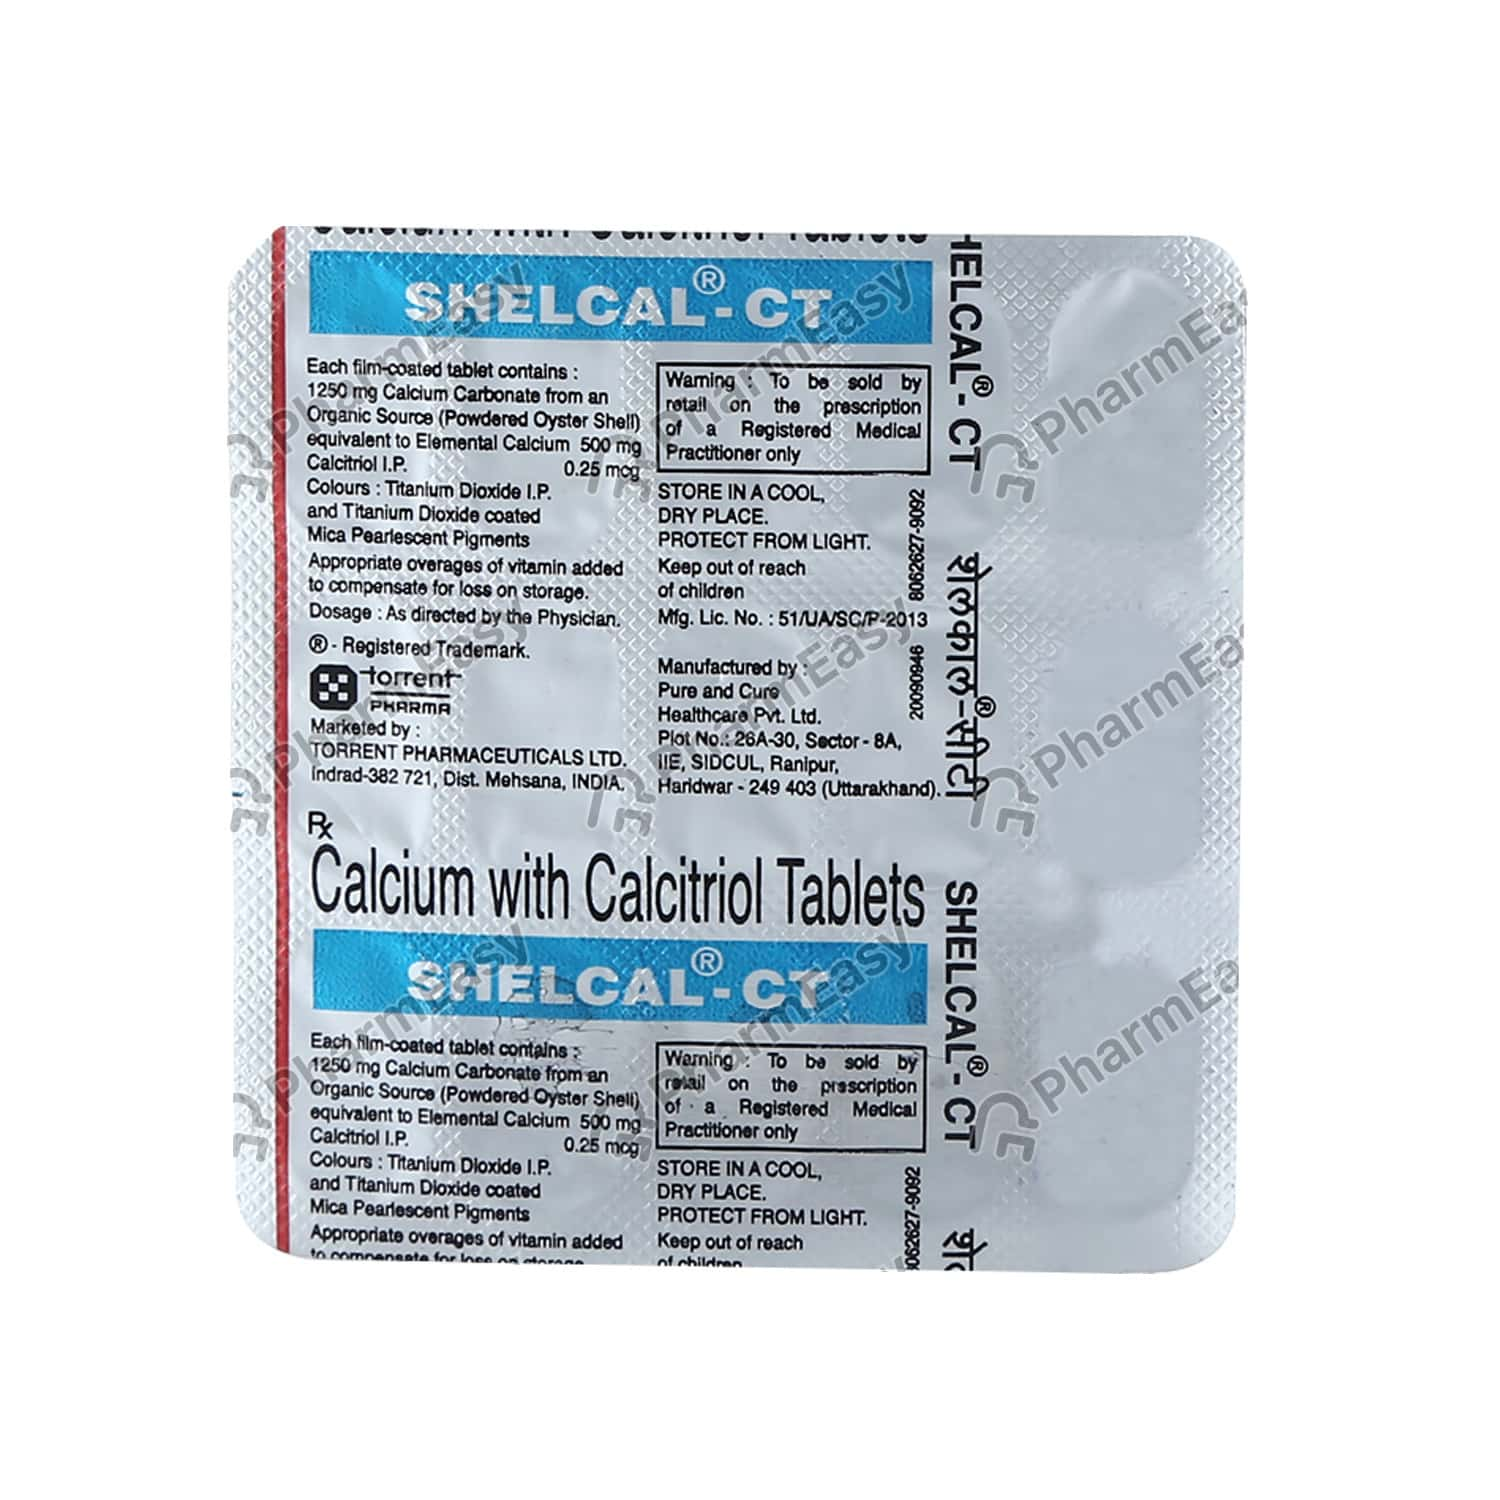 Shelcal Ct Strip Of 15 Tablets